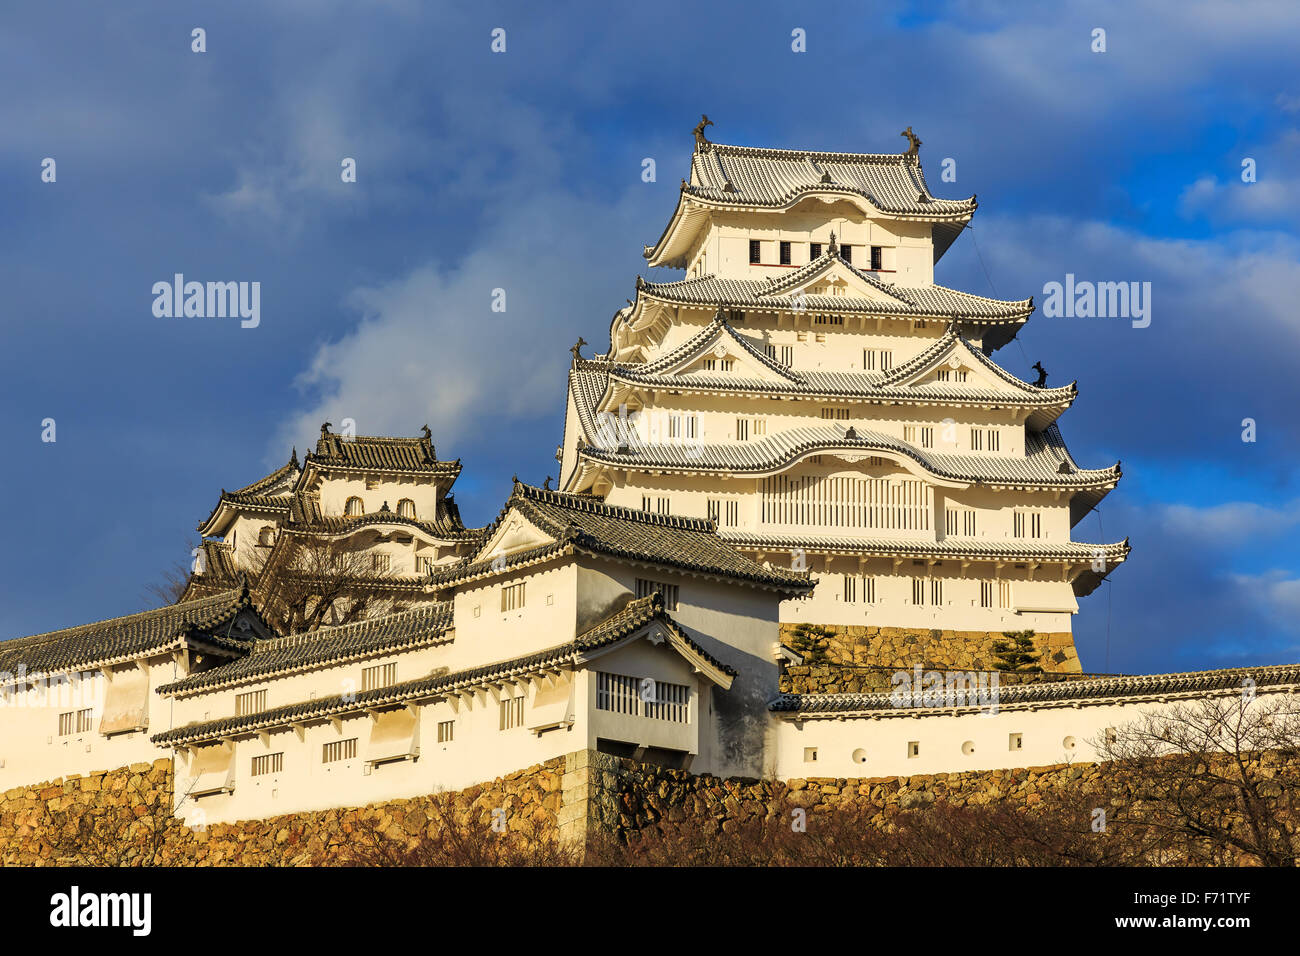 Hilltop Himeji Castle, also called White Heron Castle in Hyogo prefecture, Japan. - Stock Image